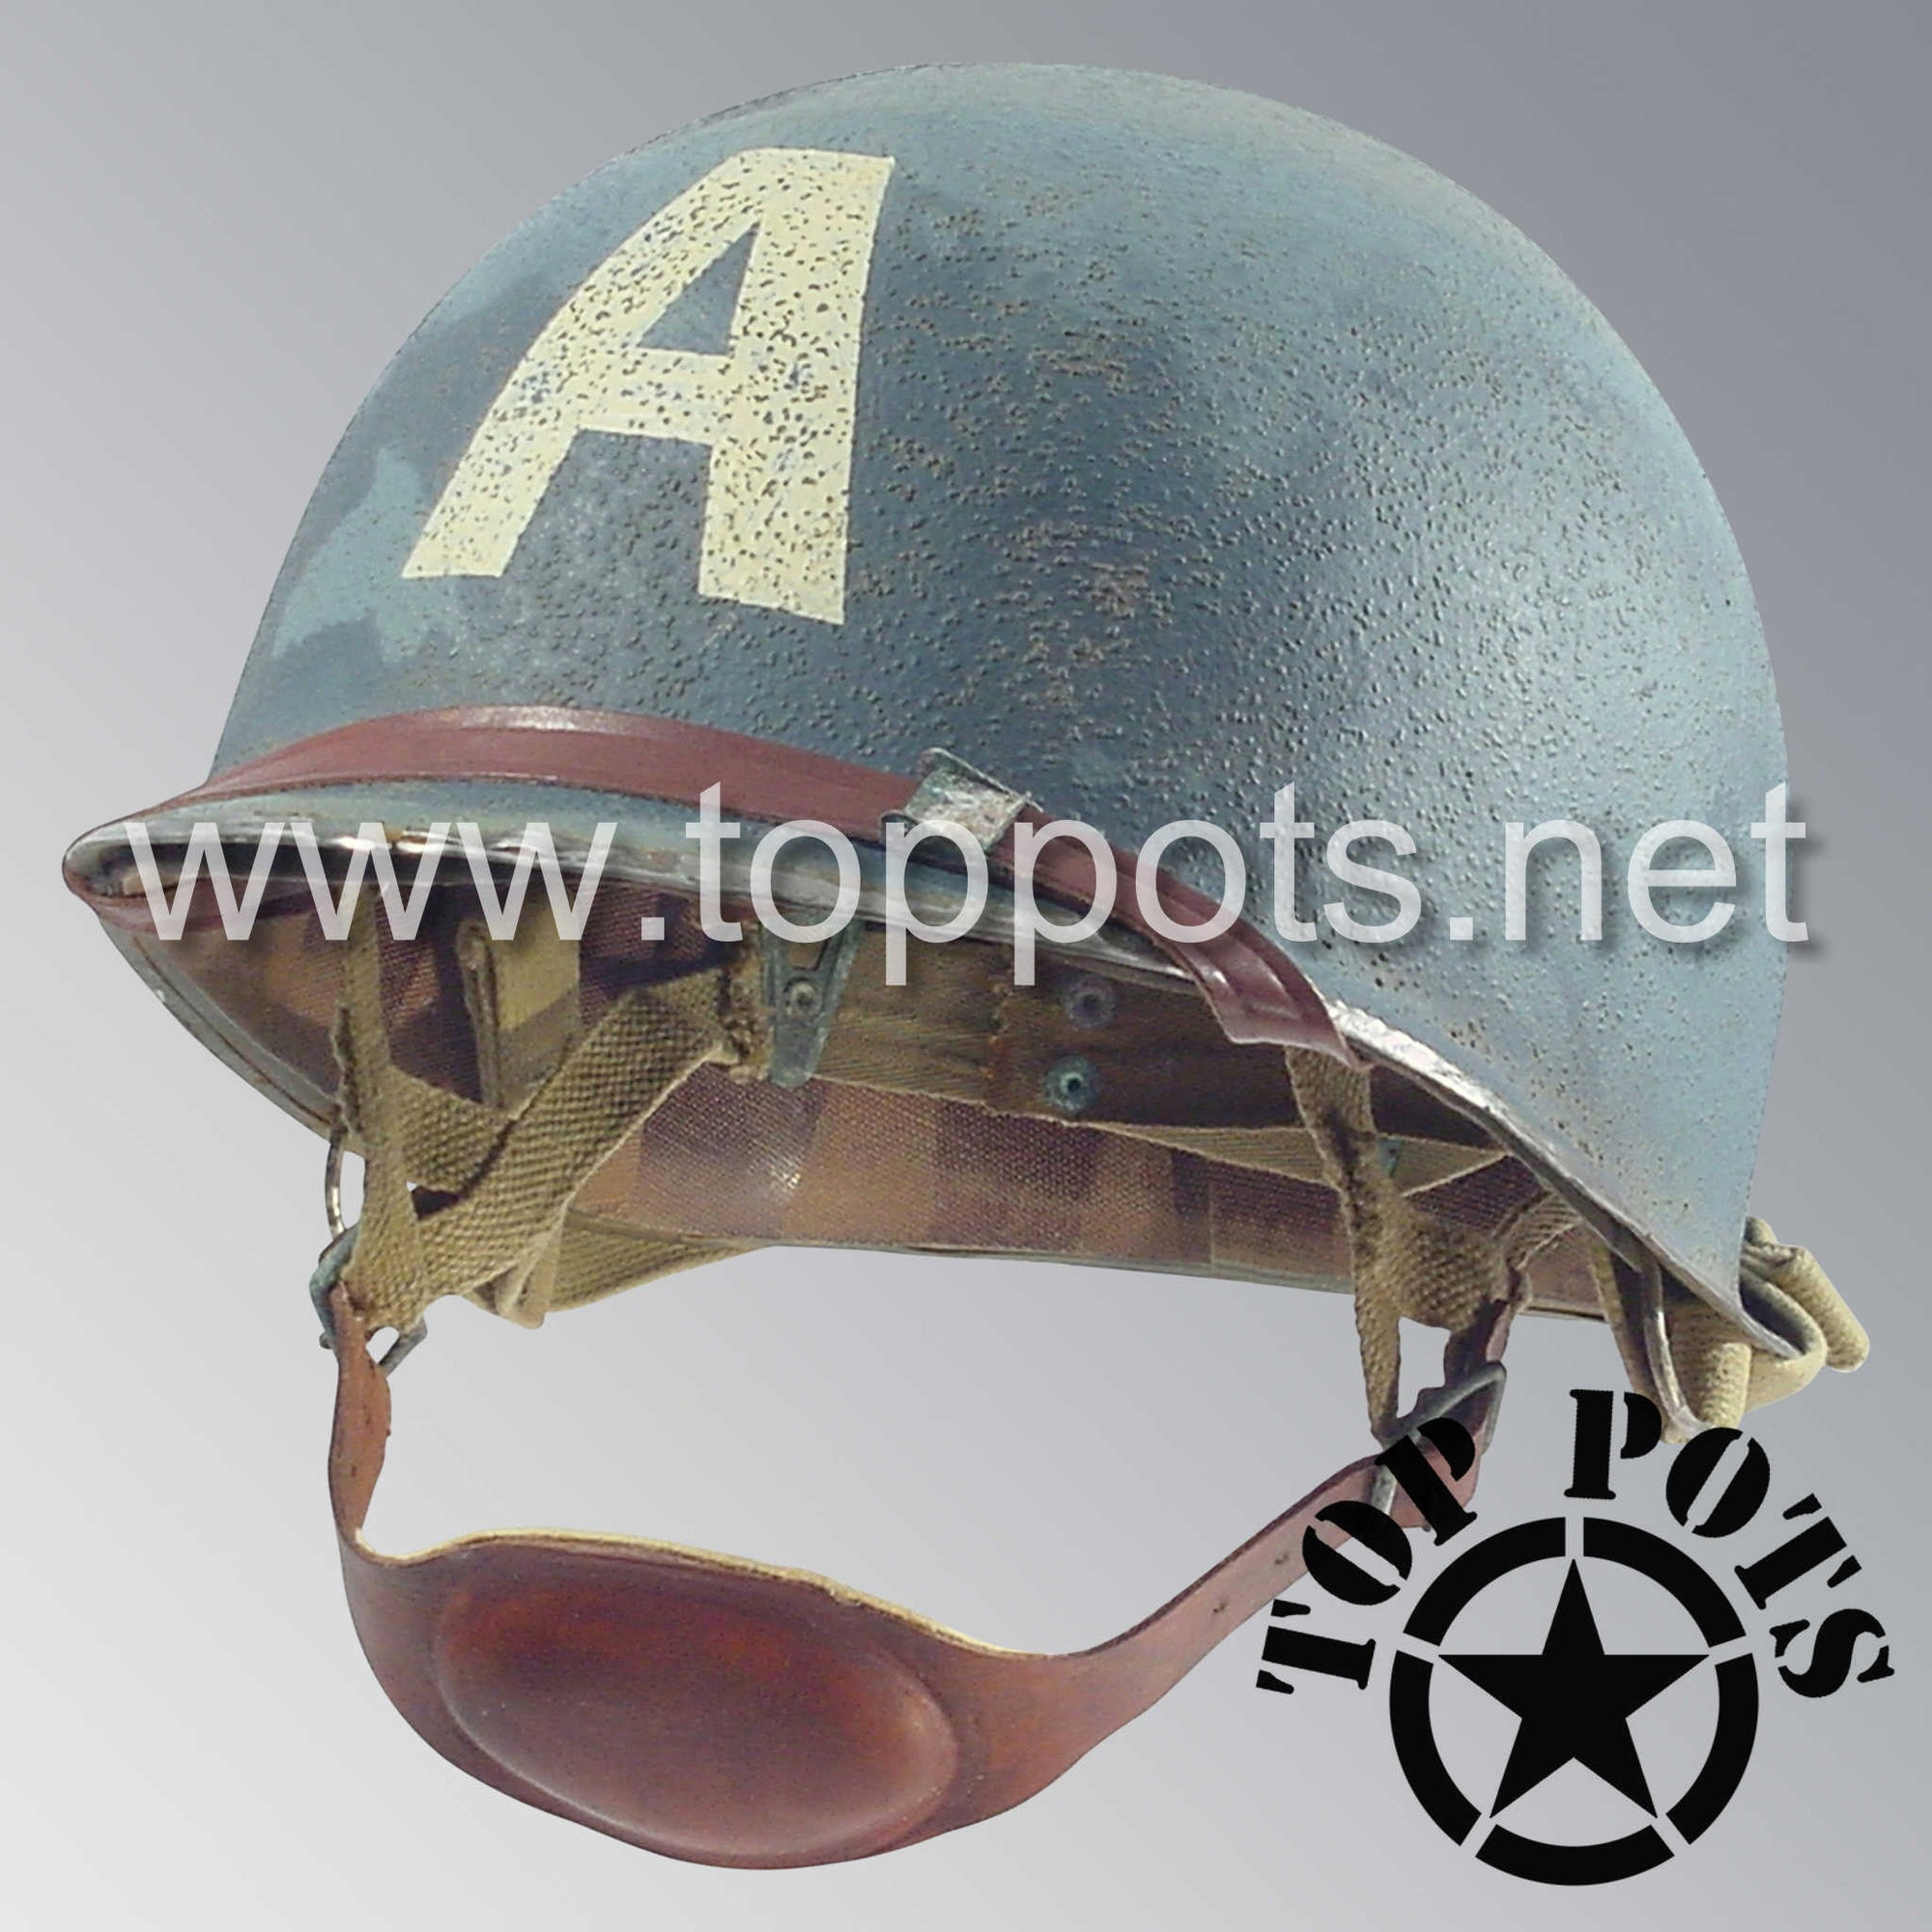 Image 1 of WWII US Army Aged Original M2 Paratrooper Airborne Helmet D Bale Shell and Liner with Captain America Emblem